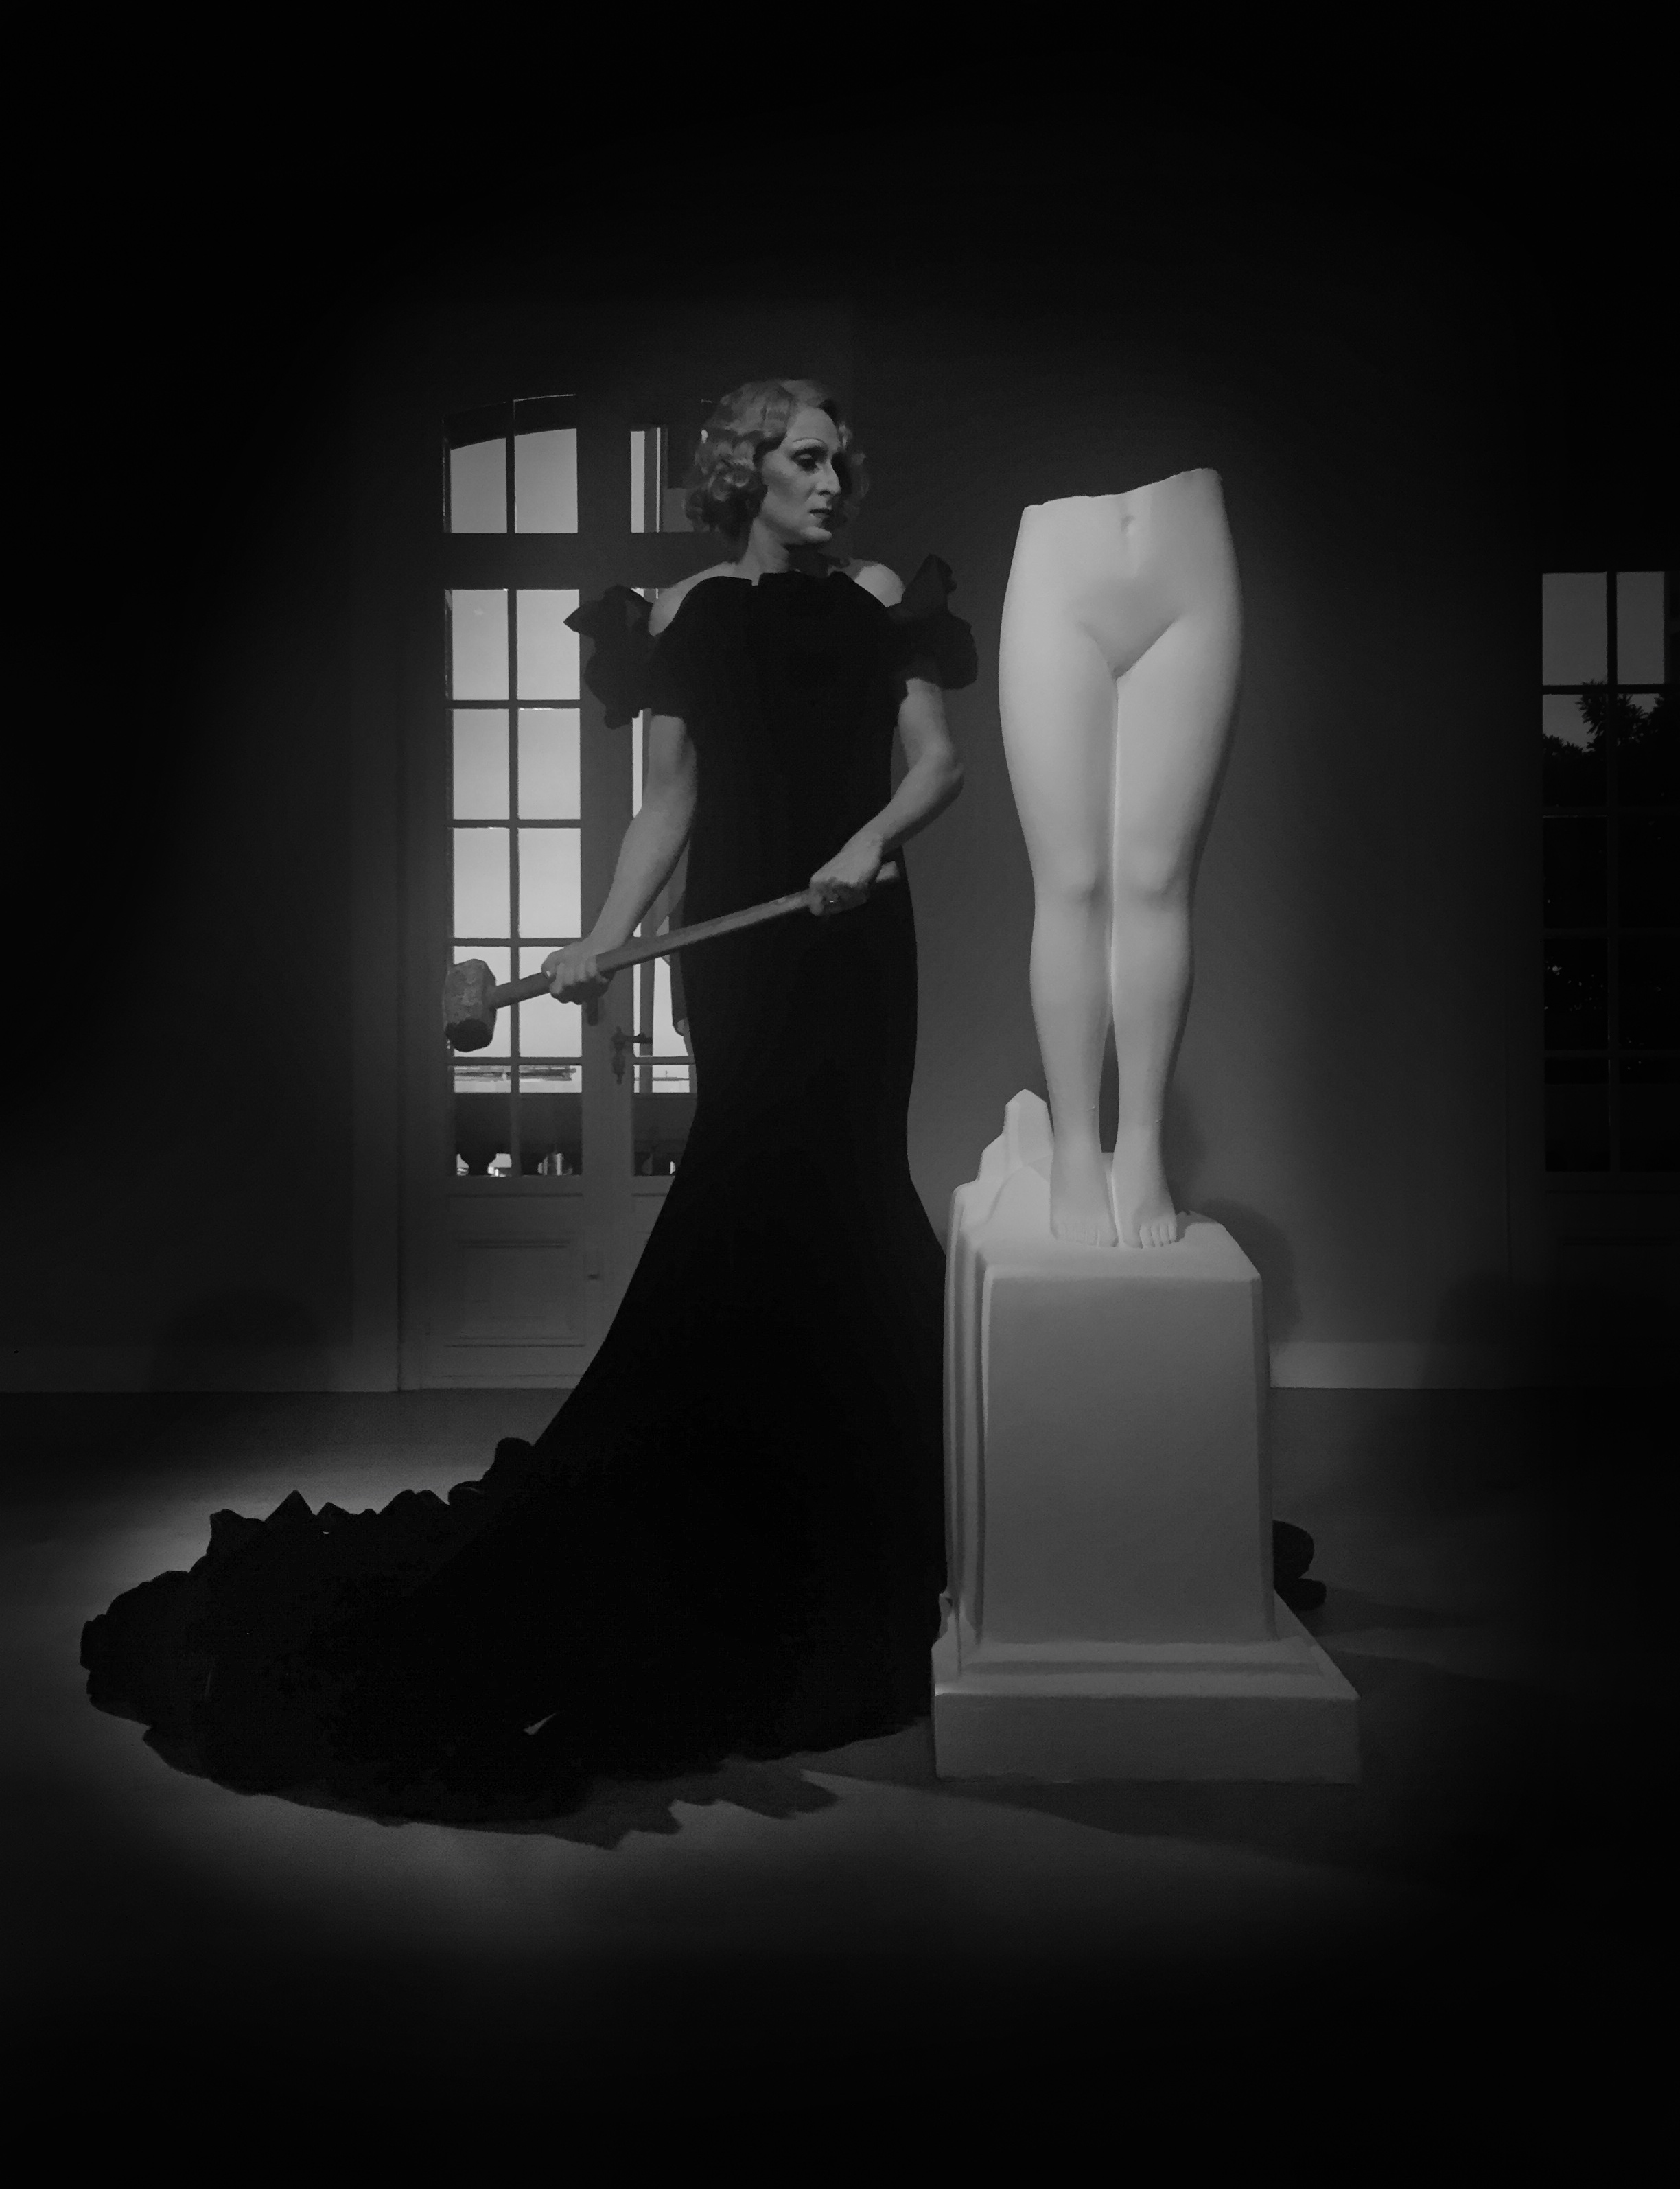 Francesco Vezzoli wearing custom-made Prada dress inspired to Marlene Dietrich at his Villa Marlene performance